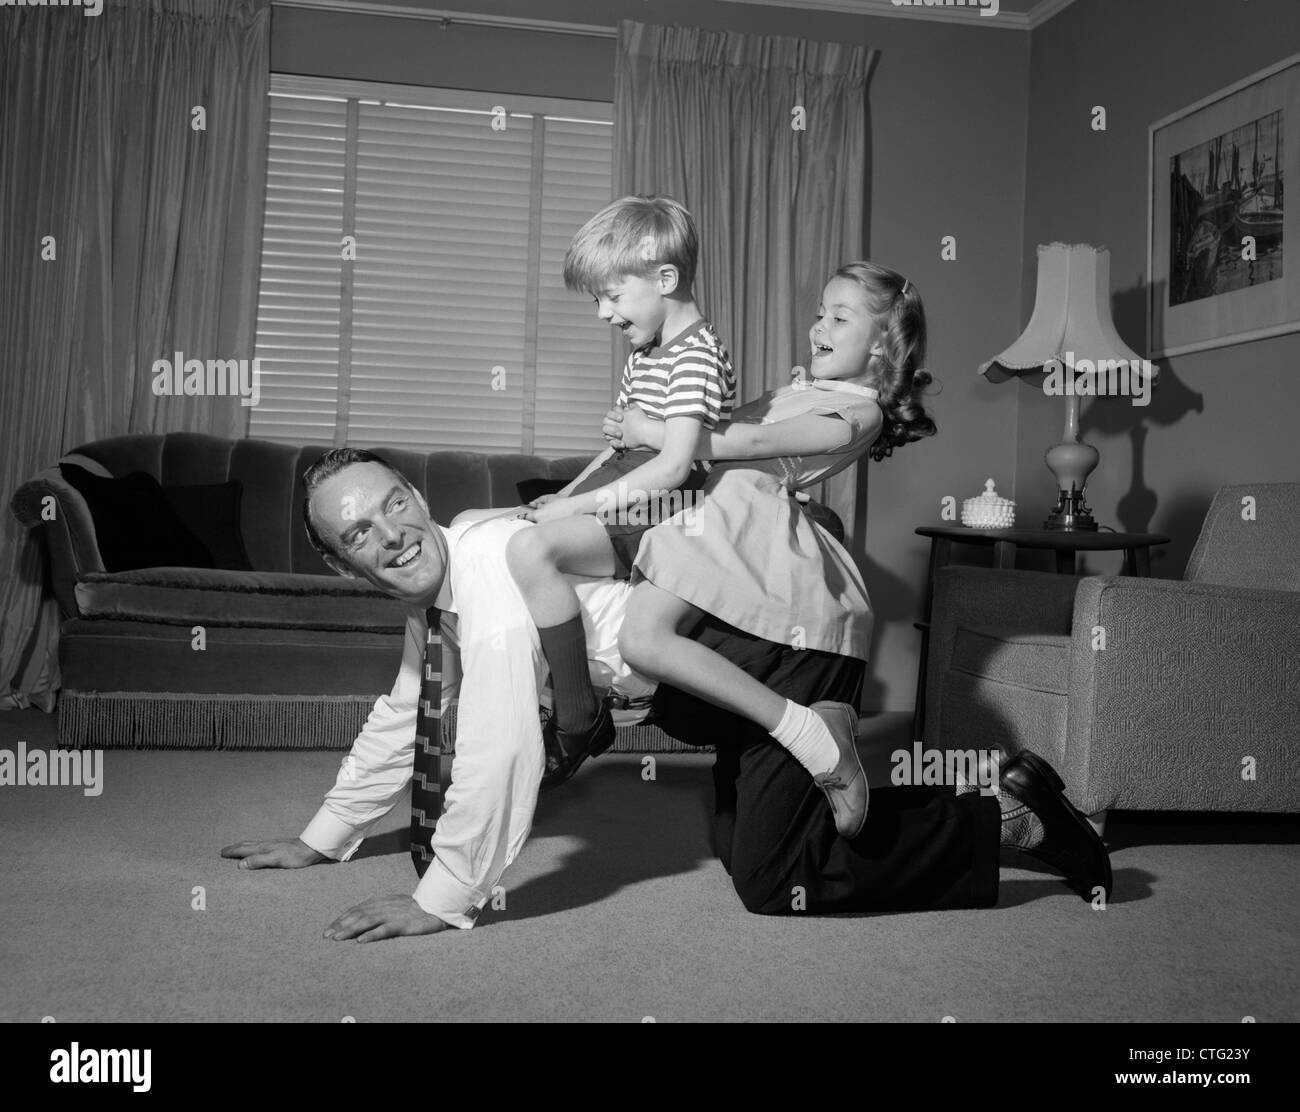 1950s 1960s DAD CARRYING BOY & GIRL PIGGYBACK ON LIVING ROOM FLOOR - Stock Image